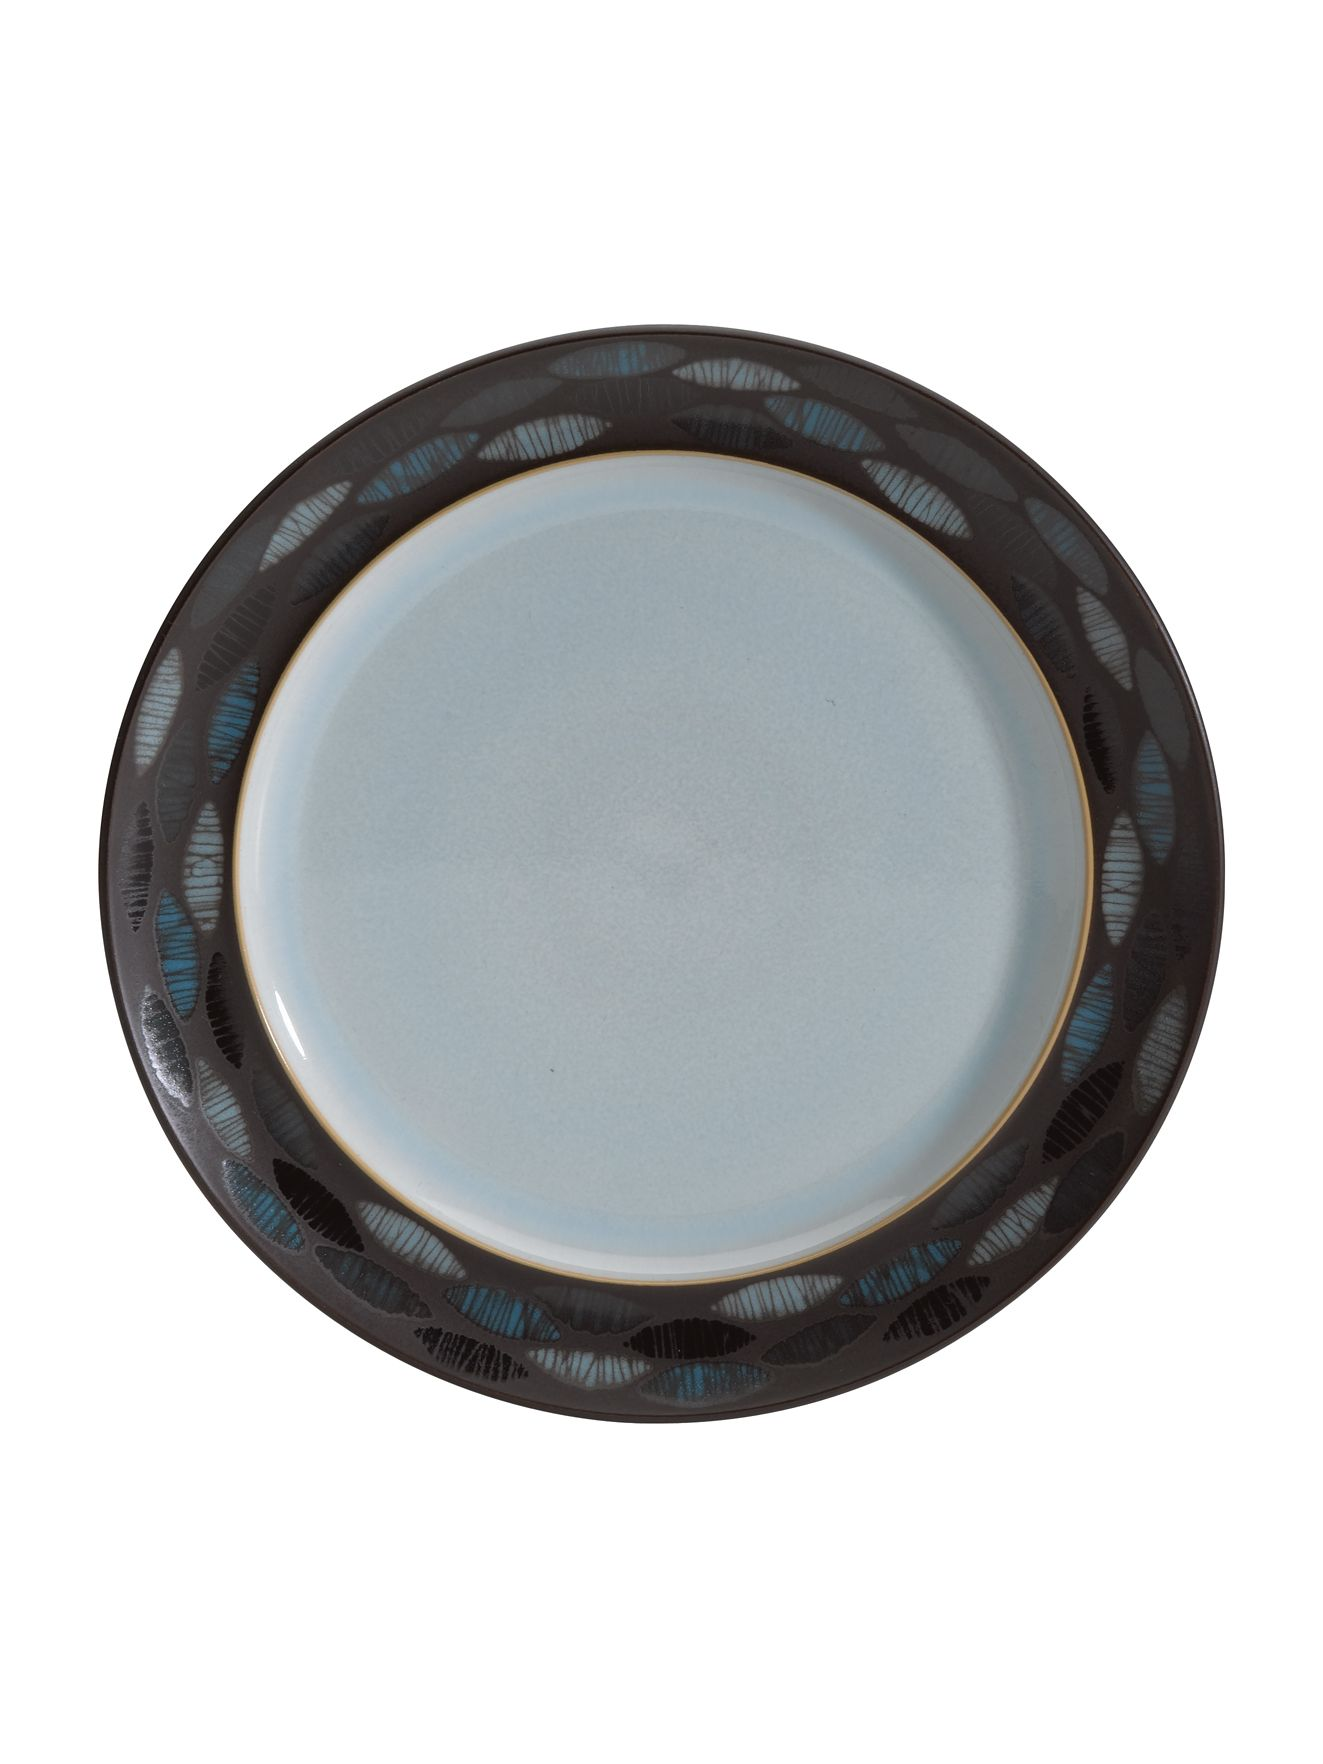 Sienna Ellipse Dinner Plate